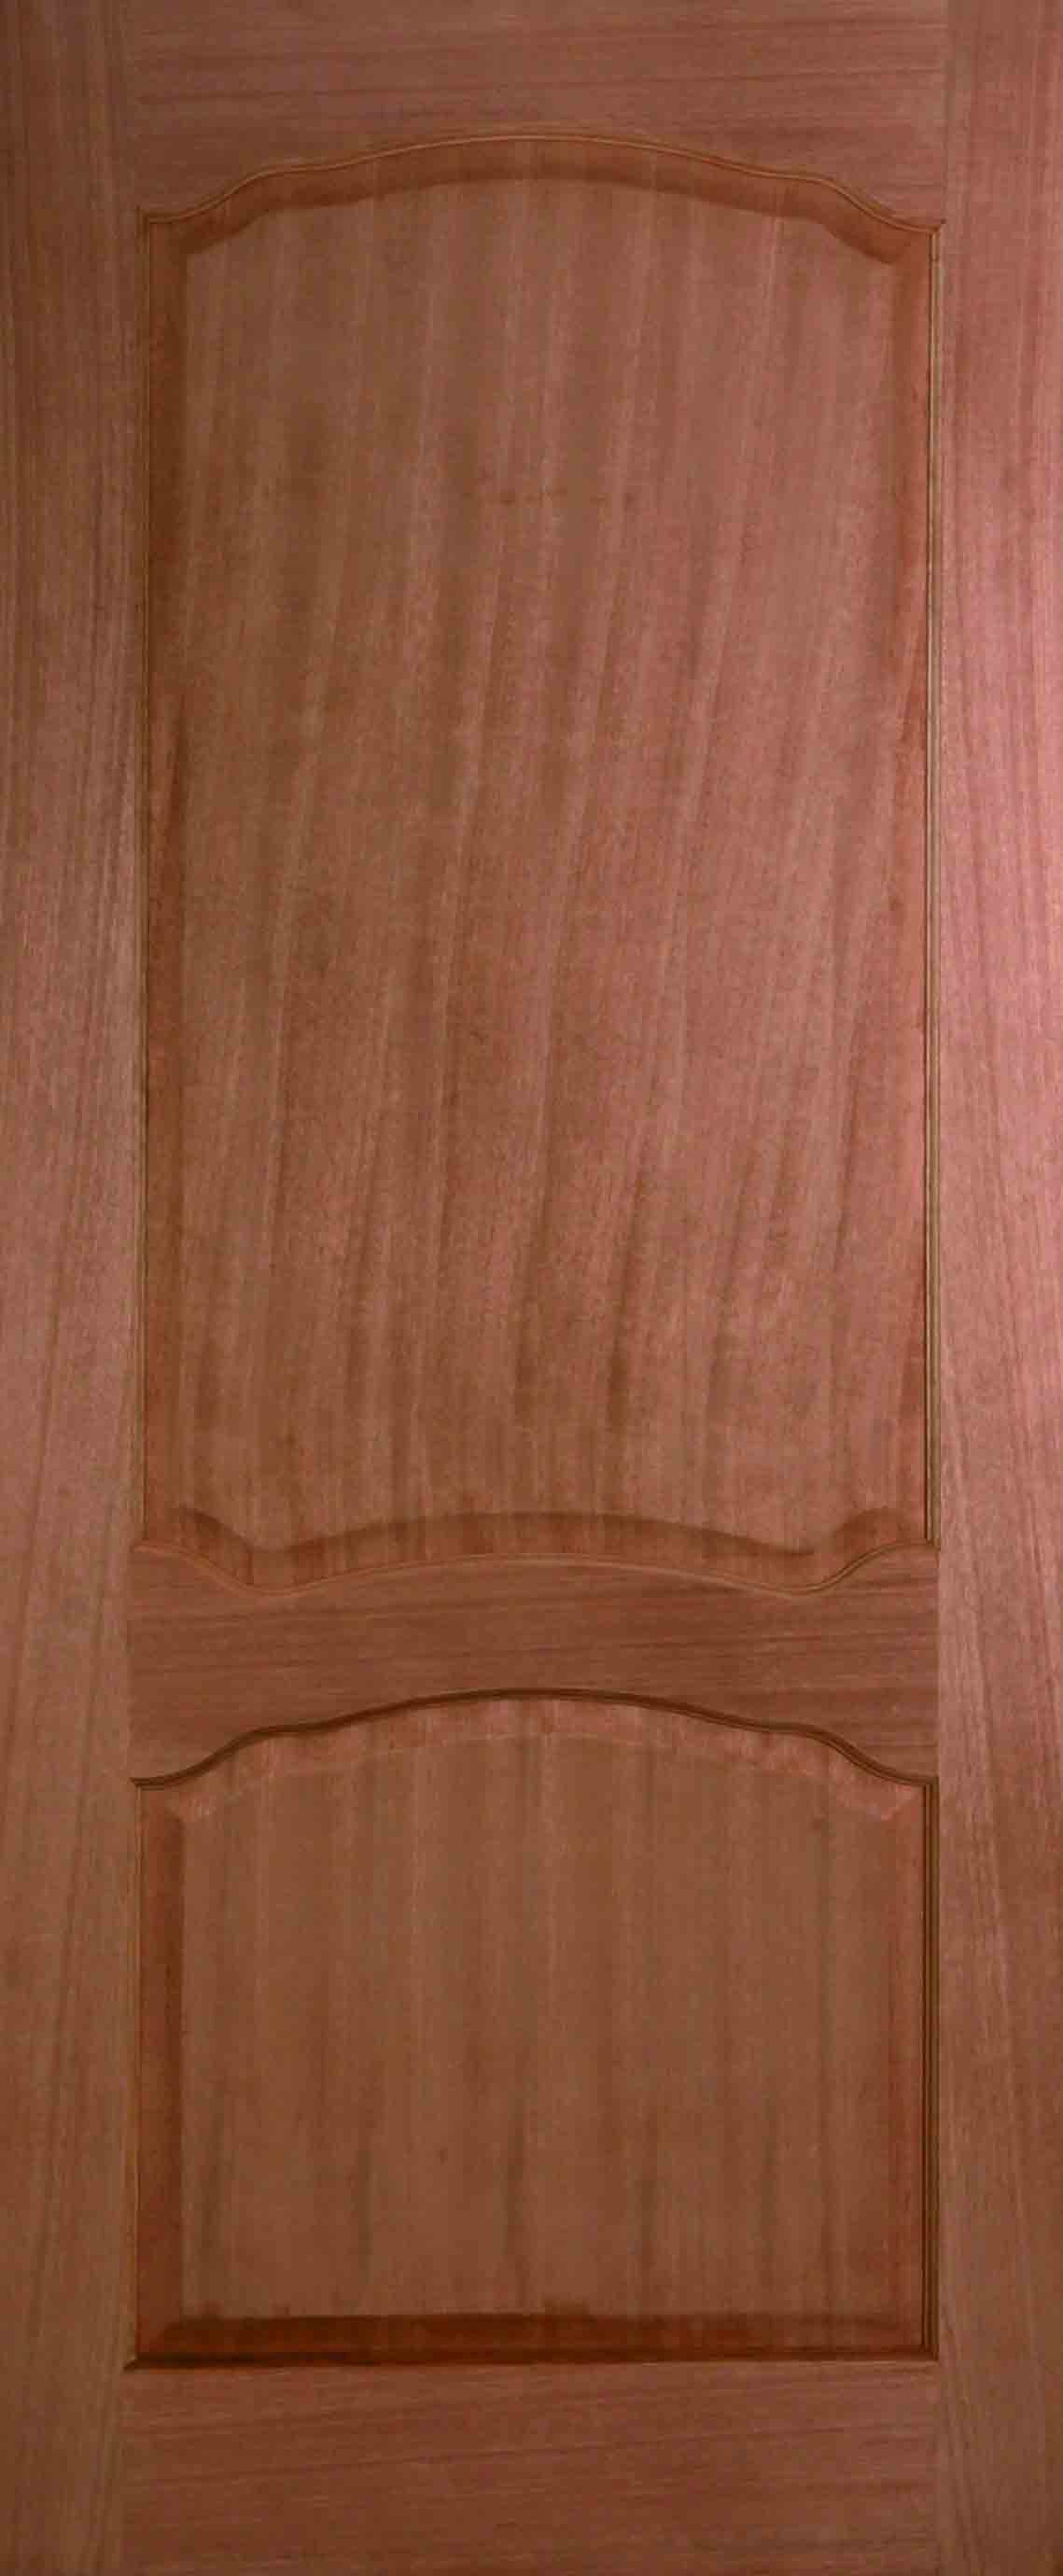 Hardwood Veneered Doors